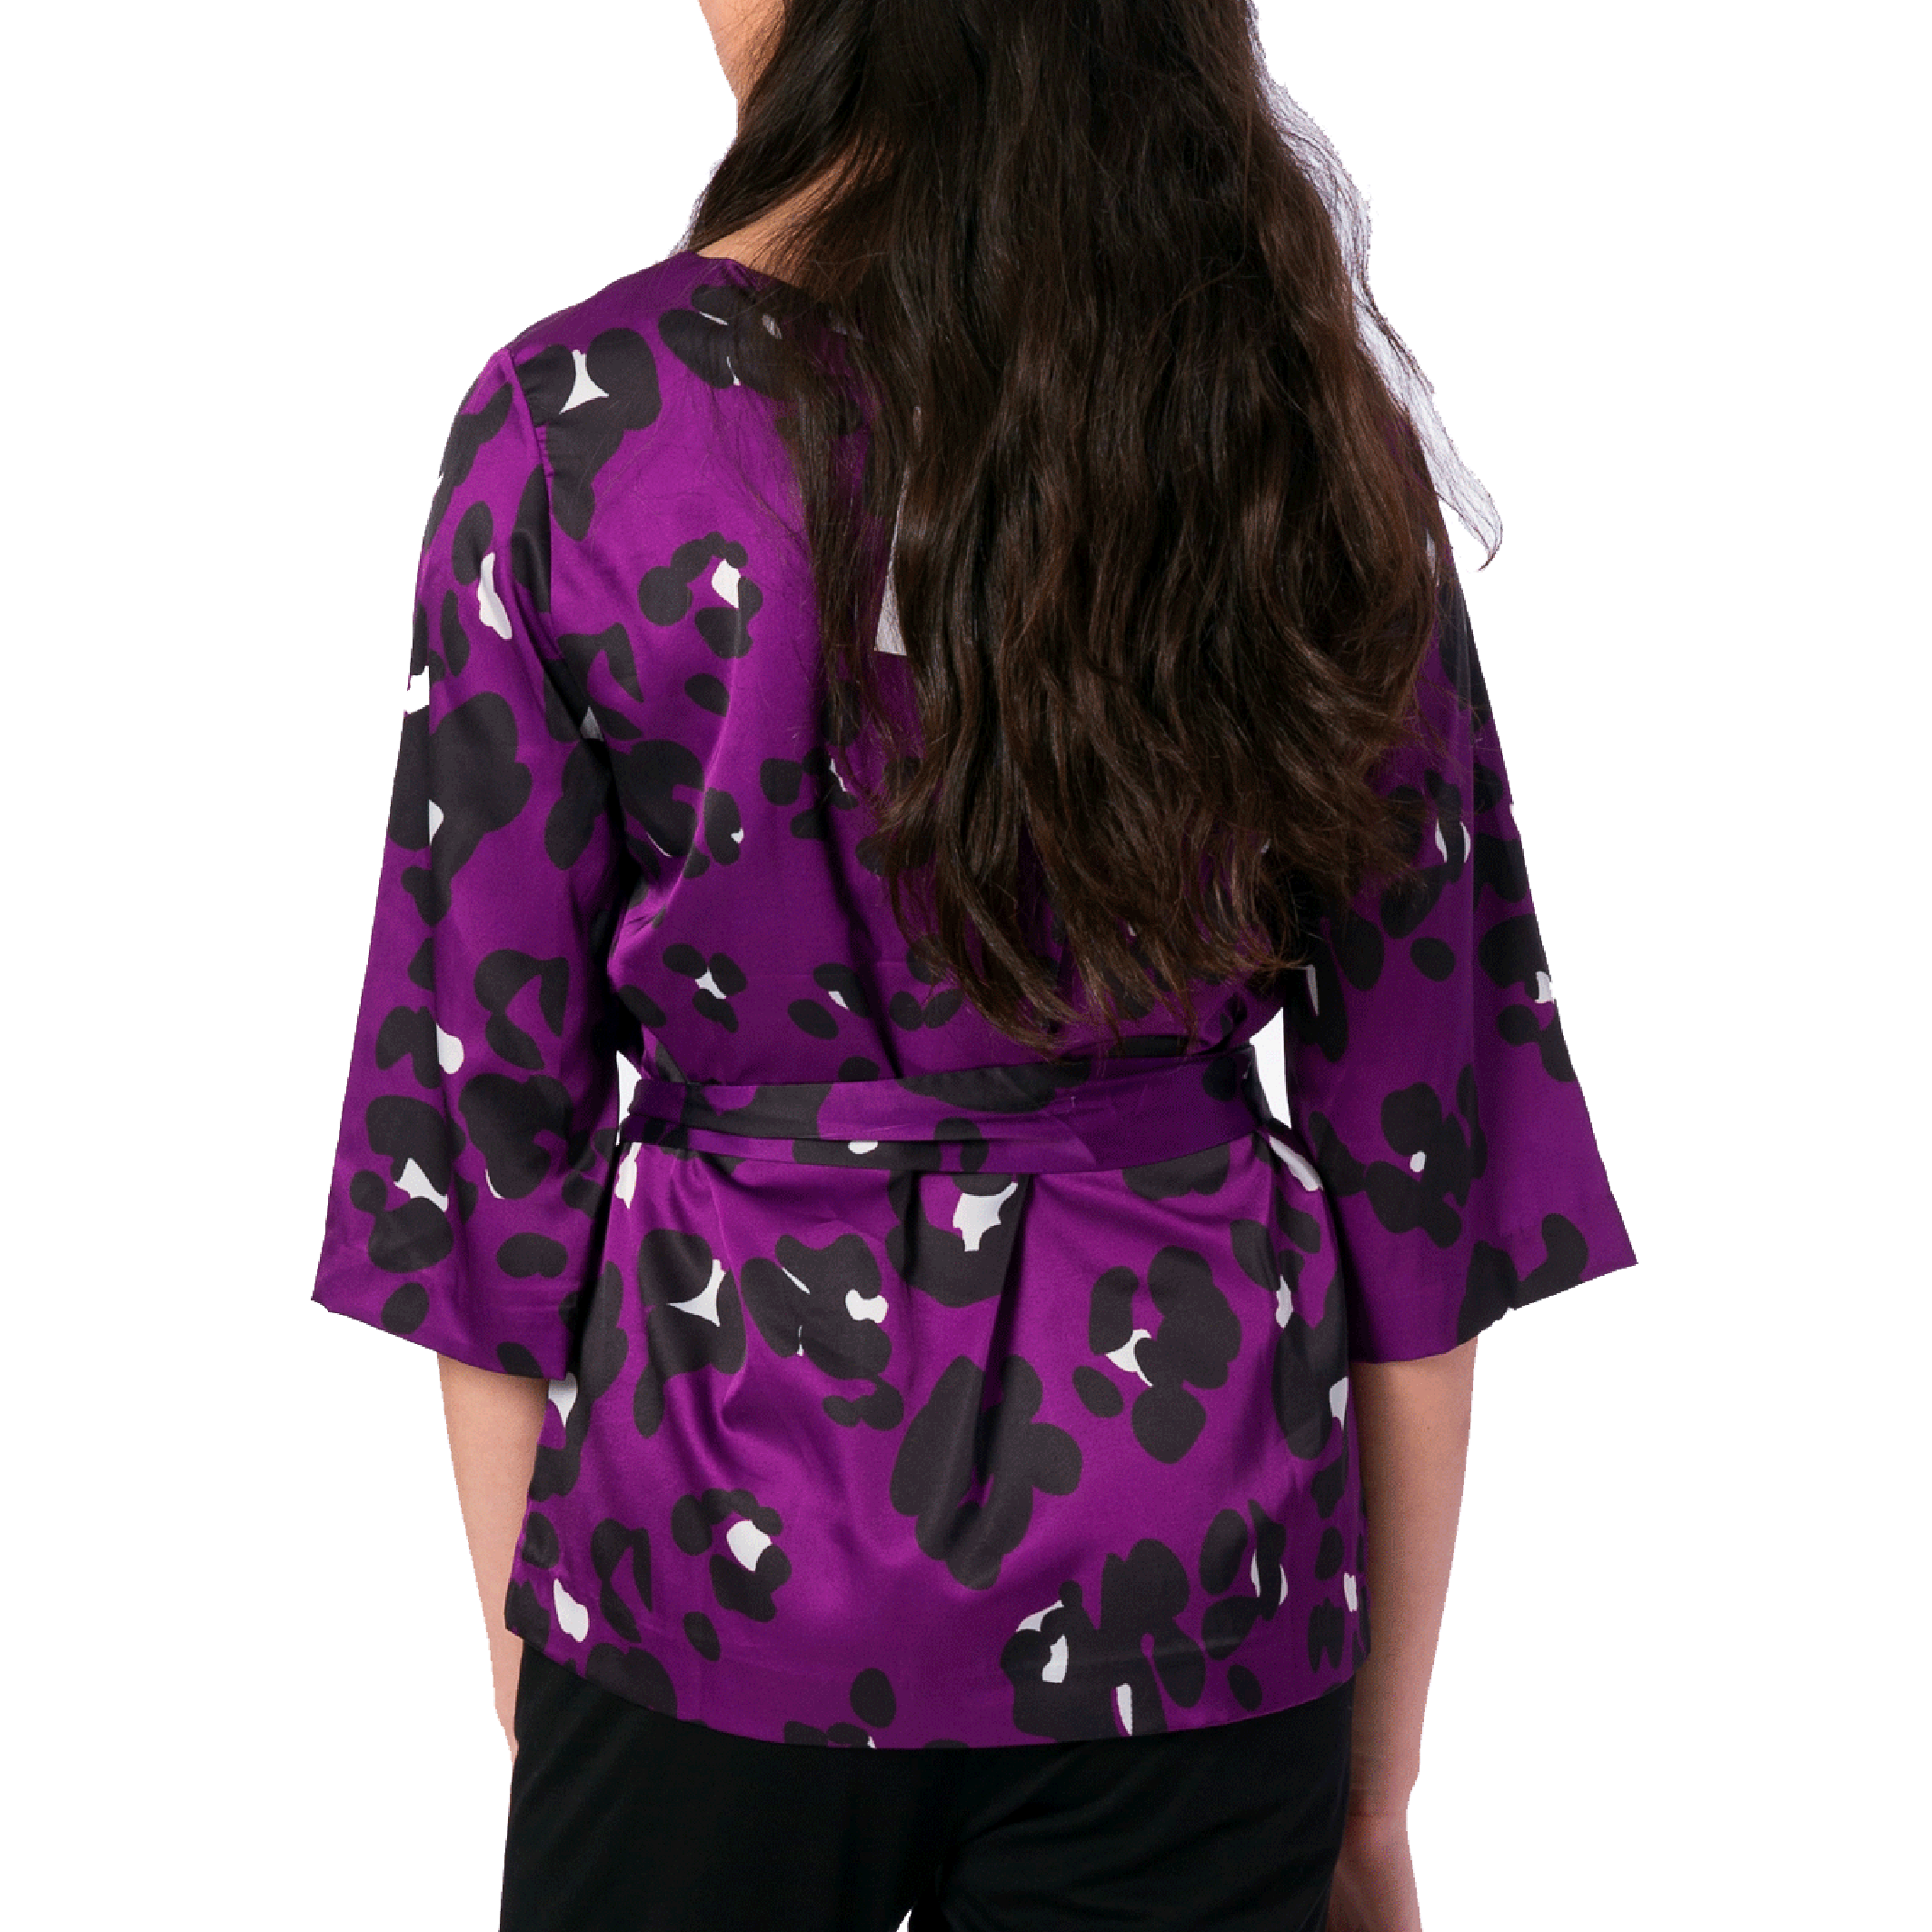 Jackie 3/4 Sleeve Blouse in Purple Spot - Elizabeth Ackerman New York